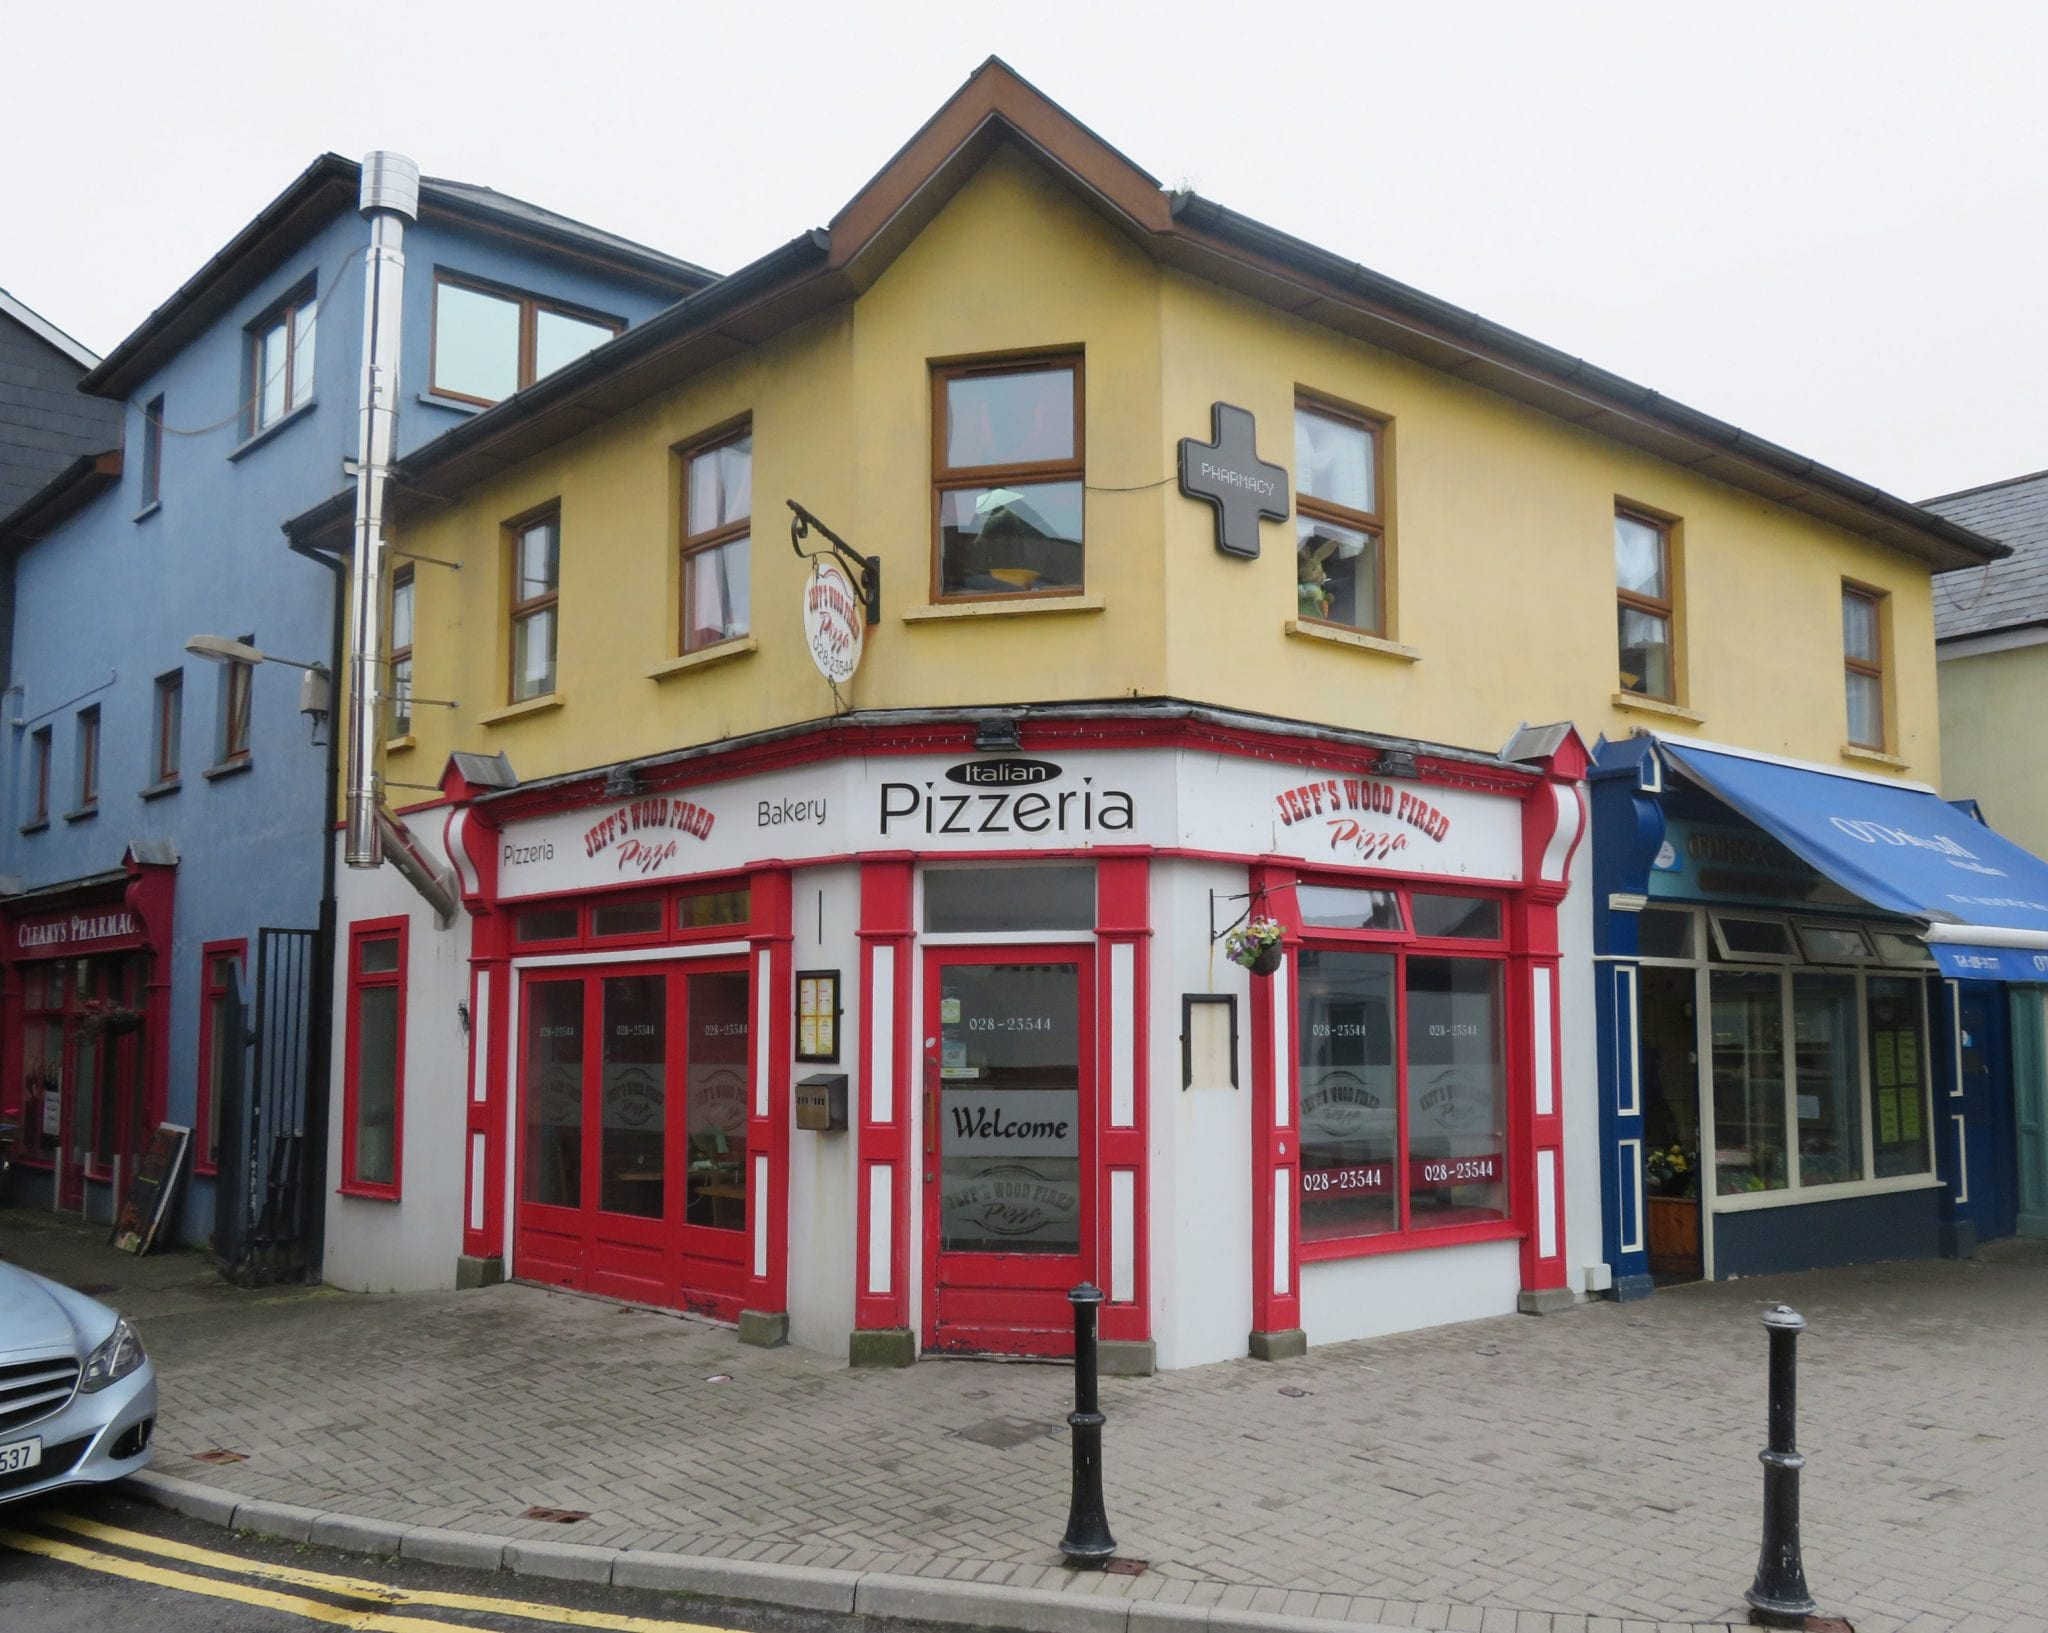 Pizzeria, Skibbereen